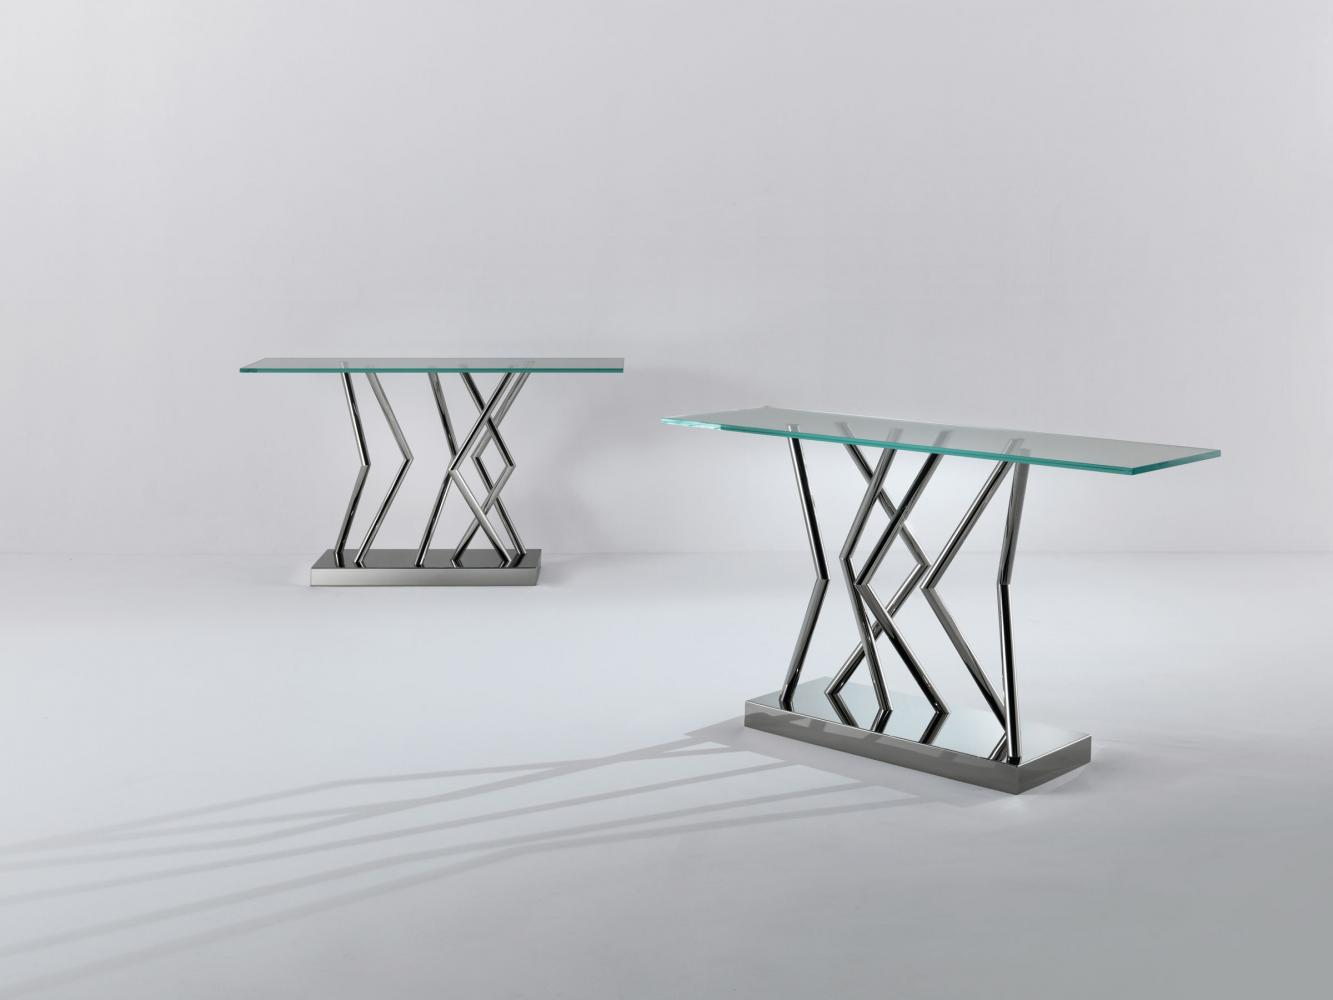 SA 06 contemporary crystal and steel console table design by Sottsass Associati